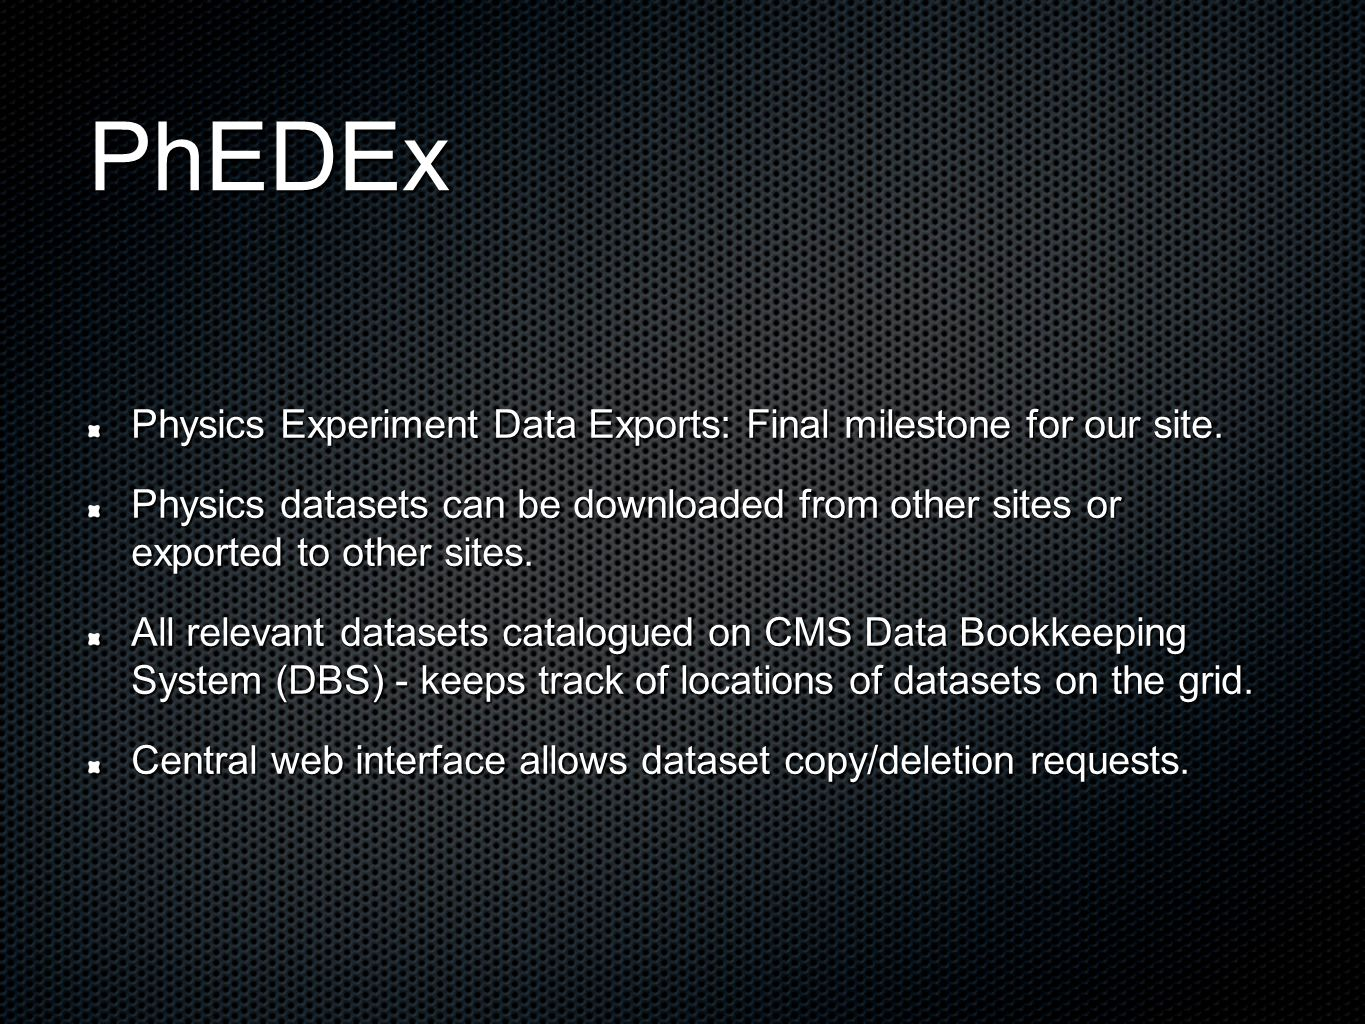 PhEDEx Physics Experiment Data Exports: Final milestone for our site. Physics datasets can be downloaded from other sites or exported to other sites.